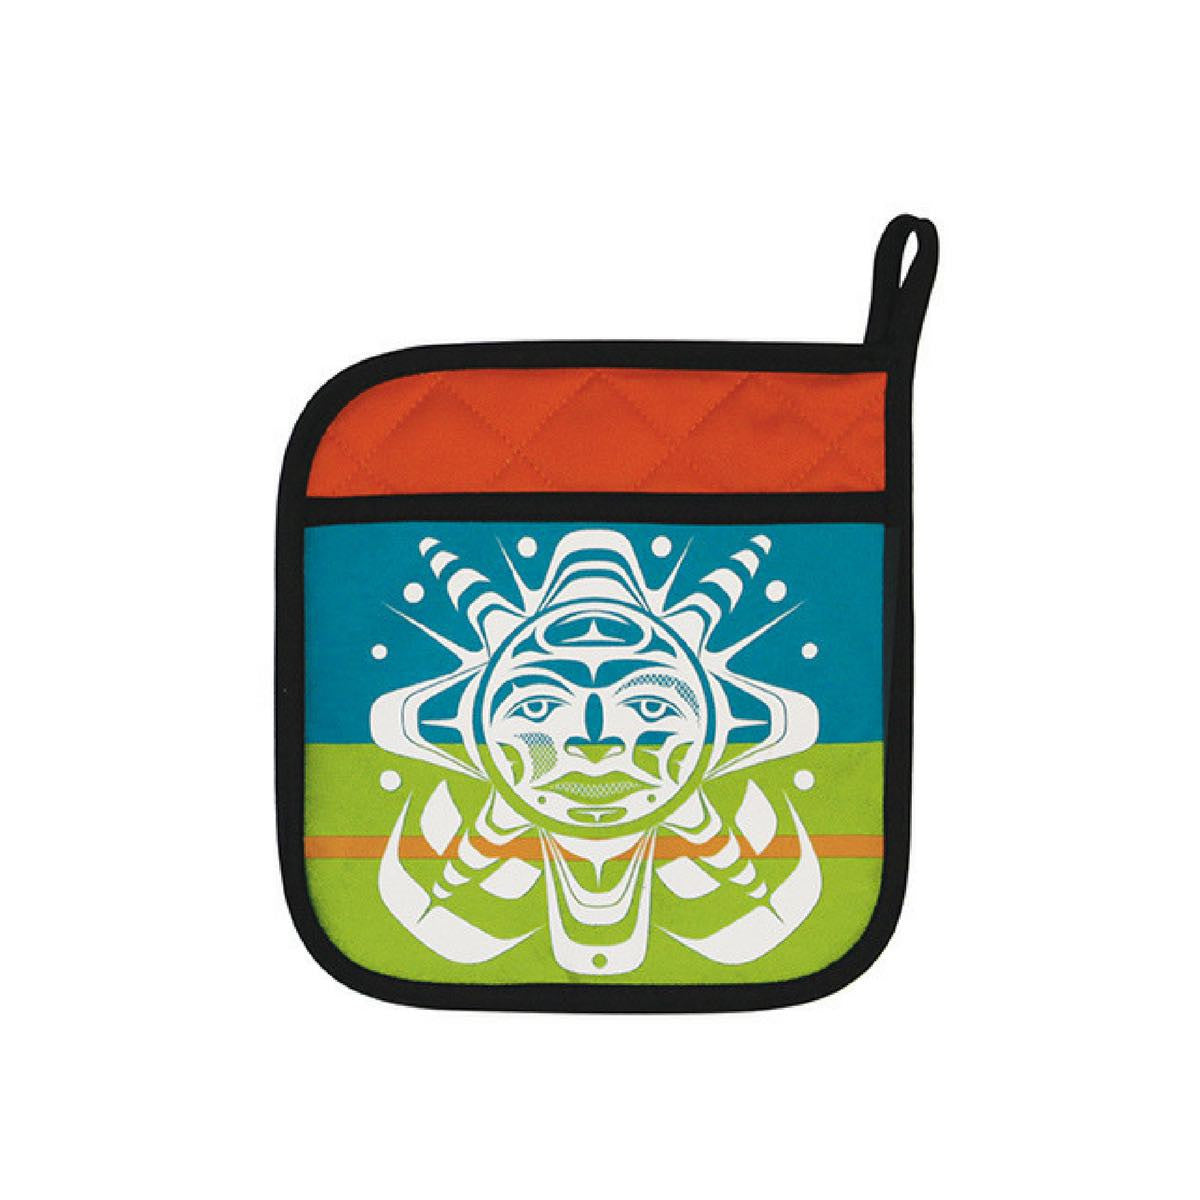 Potholder - Salish Sun by Paul Windsor